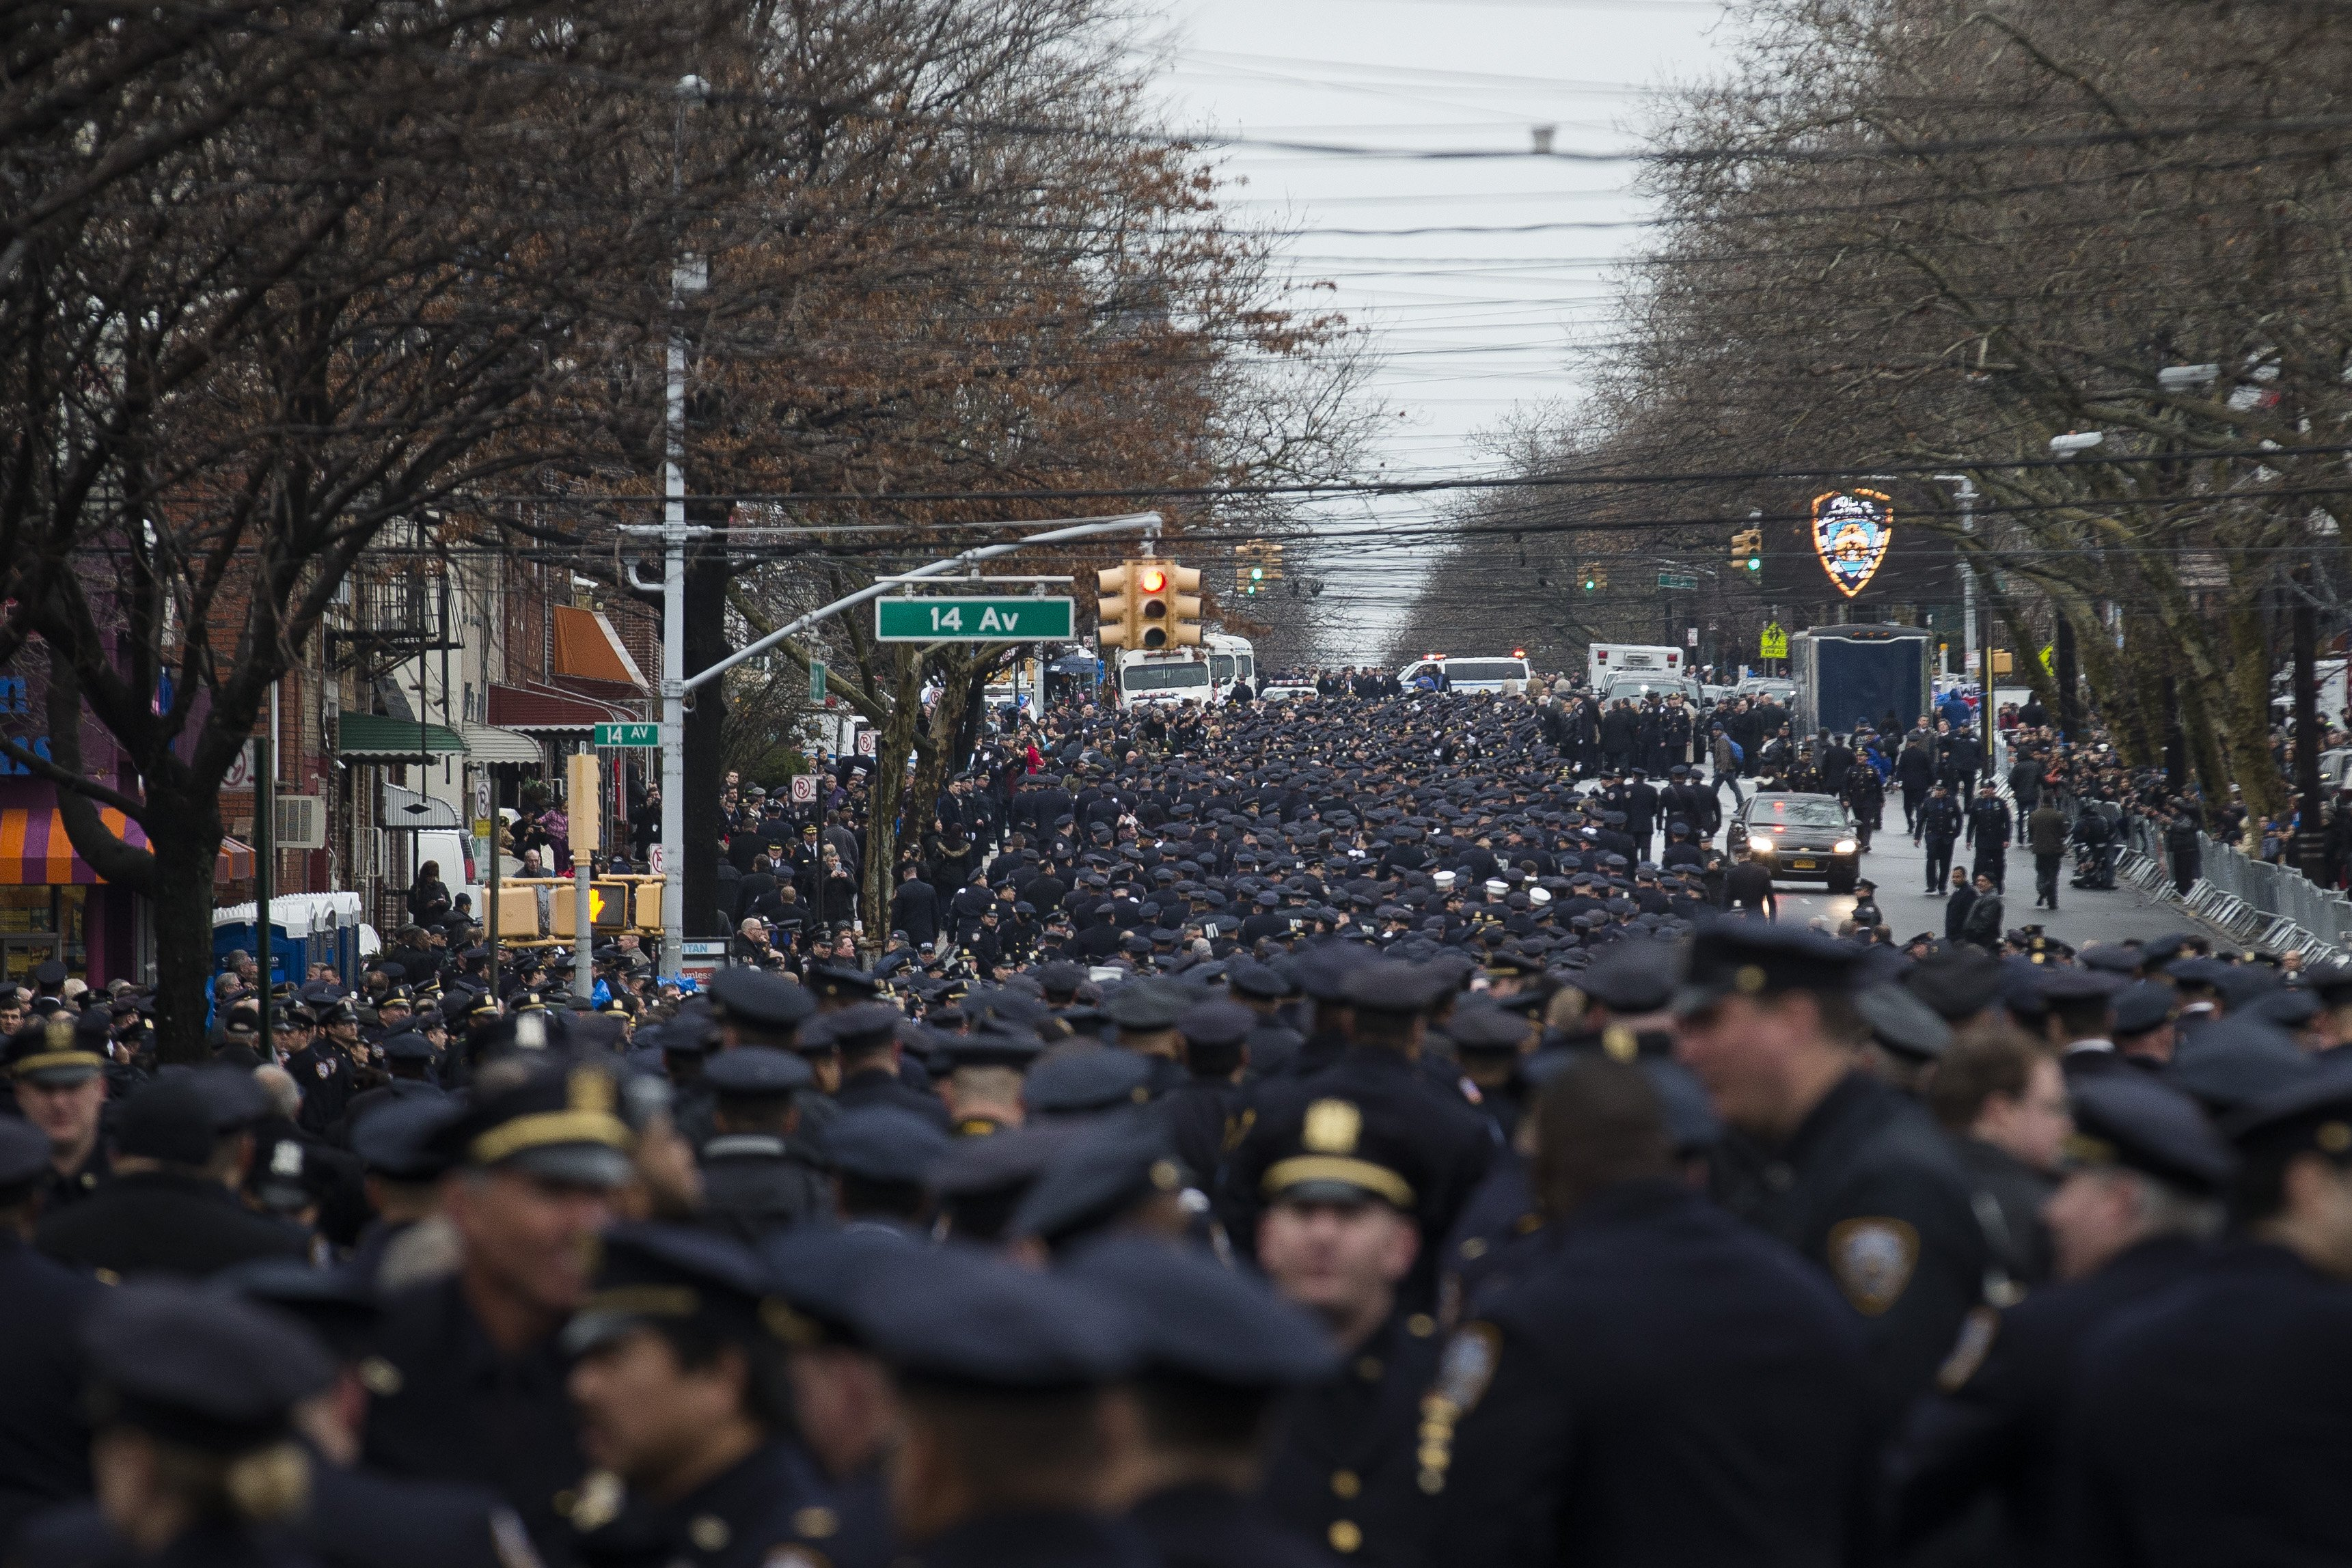 Police officers from across the country gather for the funeral of New York Police Department Officer Wenjian Liu at Aievoli Funeral Home on Jan. 4, 2015, in the Brooklyn borough of New York.